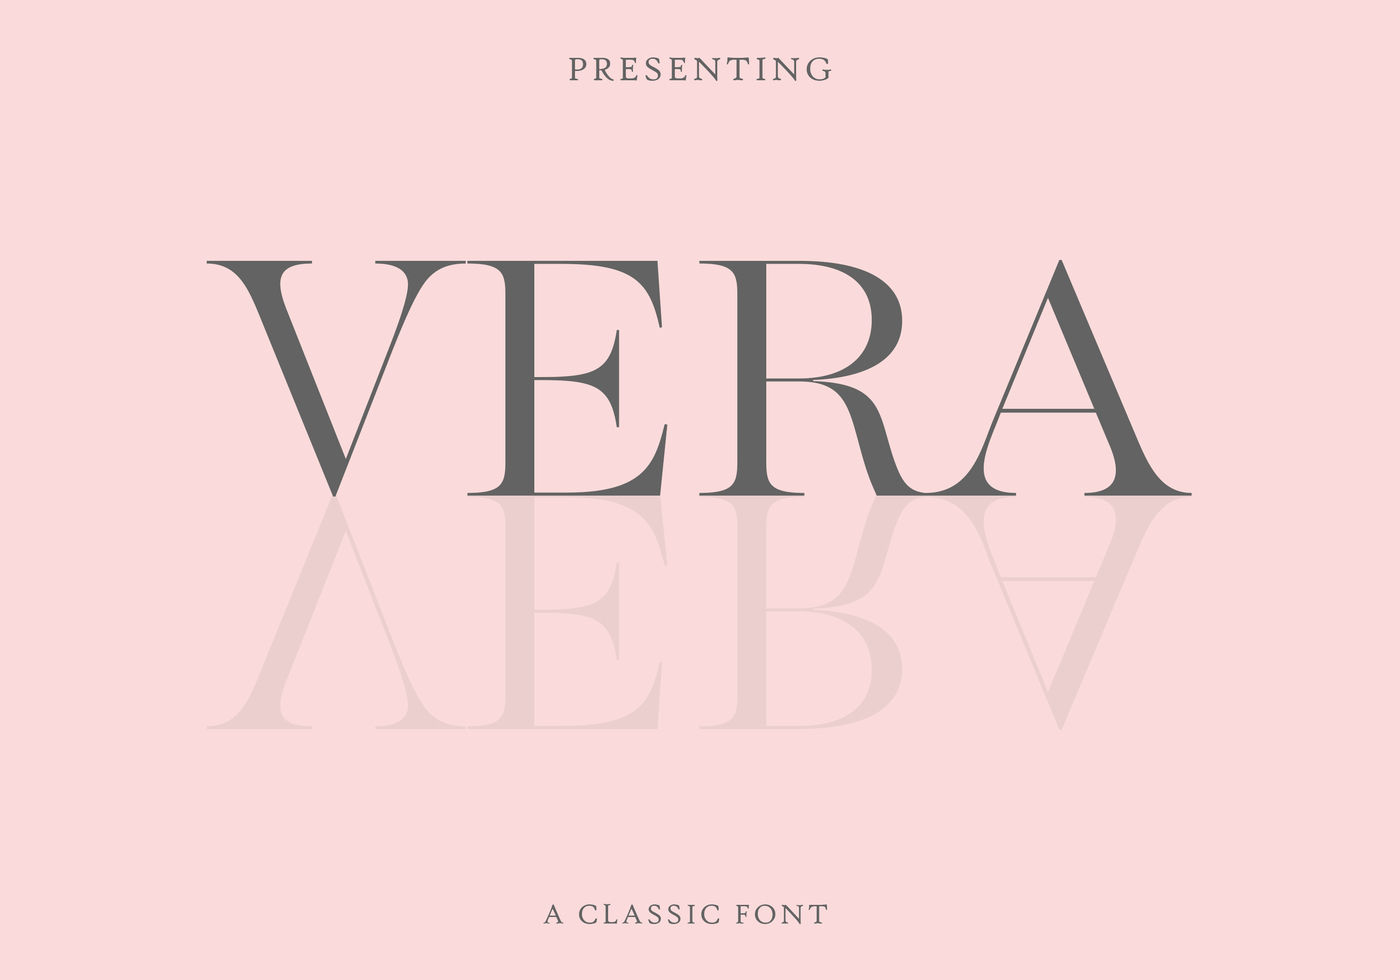 Vera Font-An Classic Elegant Font By Airy Fonts | TheHungryJPEG com